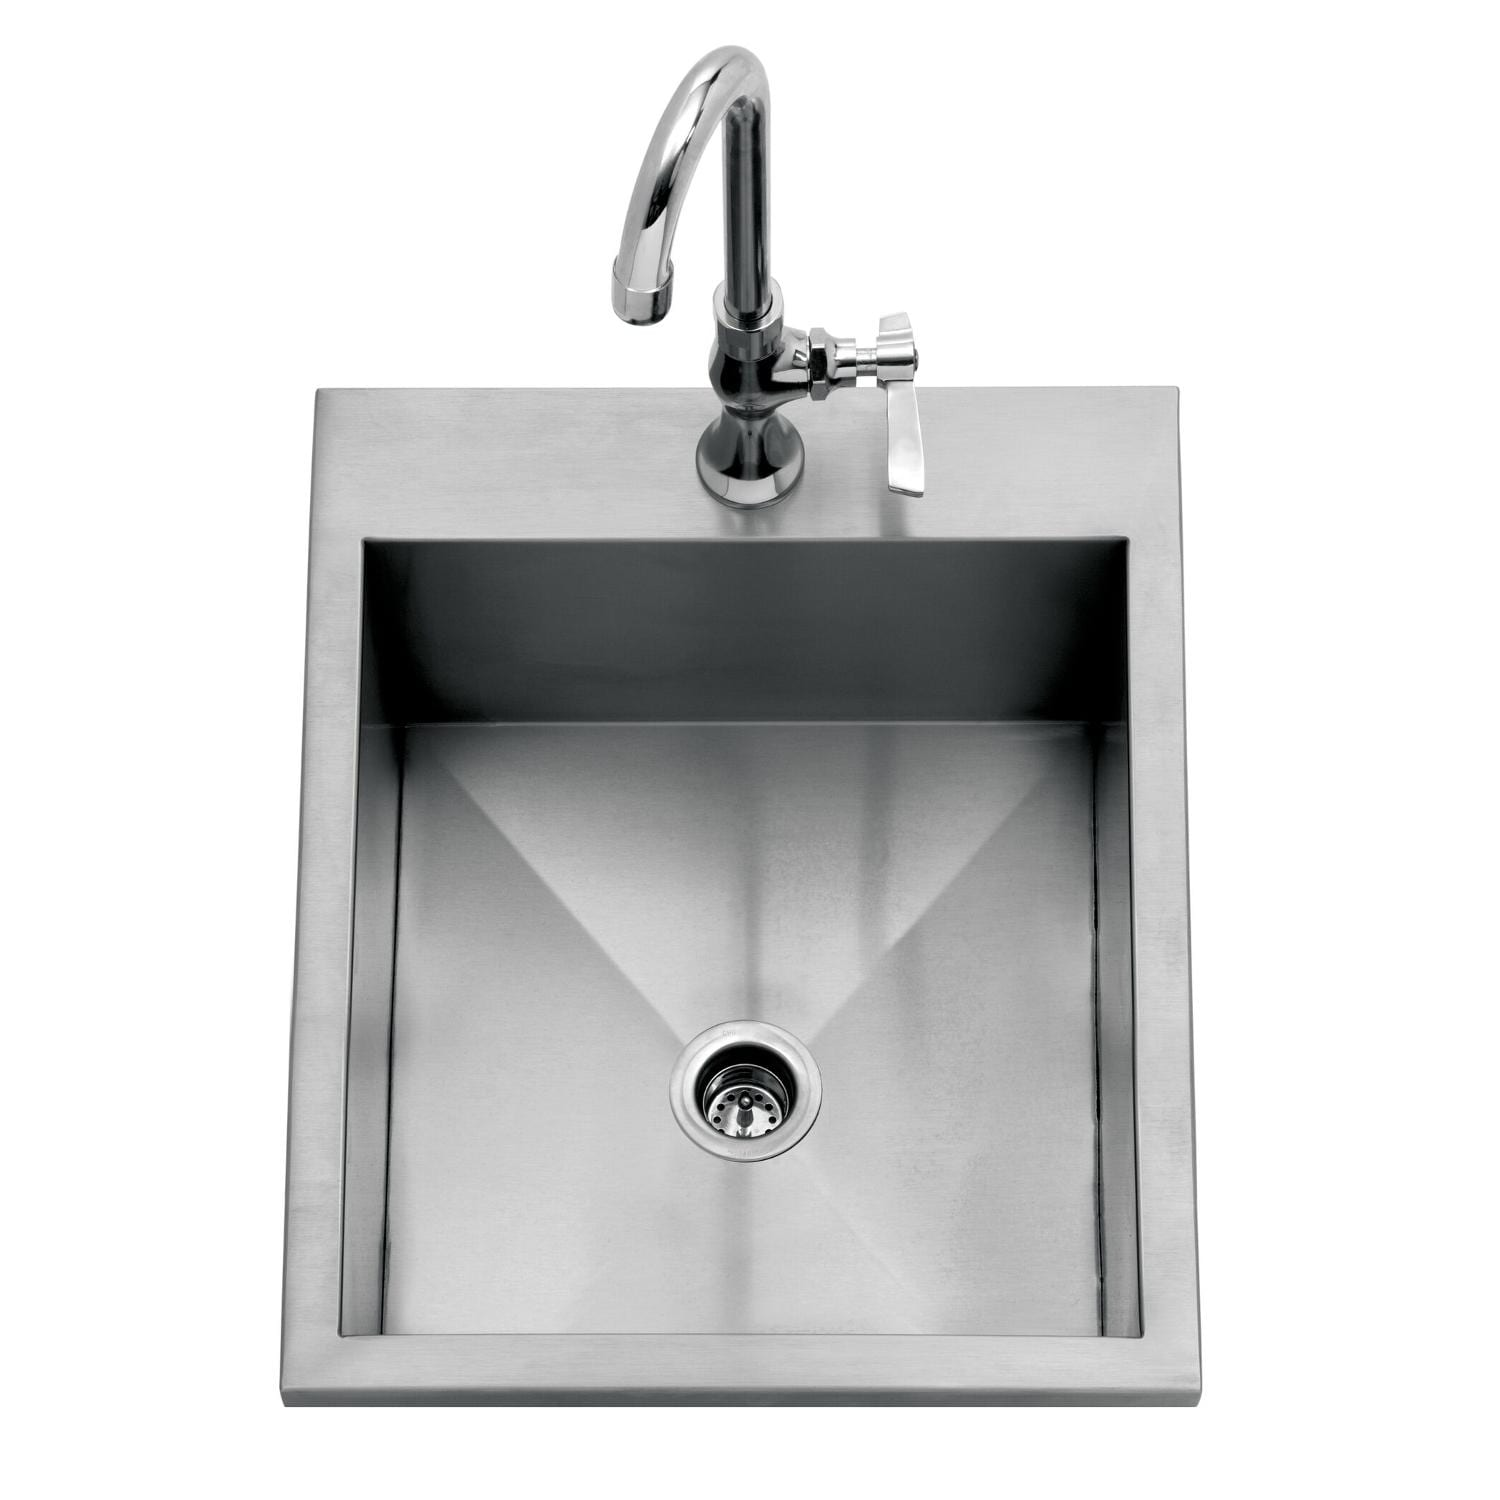 Delta Heat 15-Inch Drop-In Outdoor Rated Bar Sink With Cold Water Faucet - DHOS15